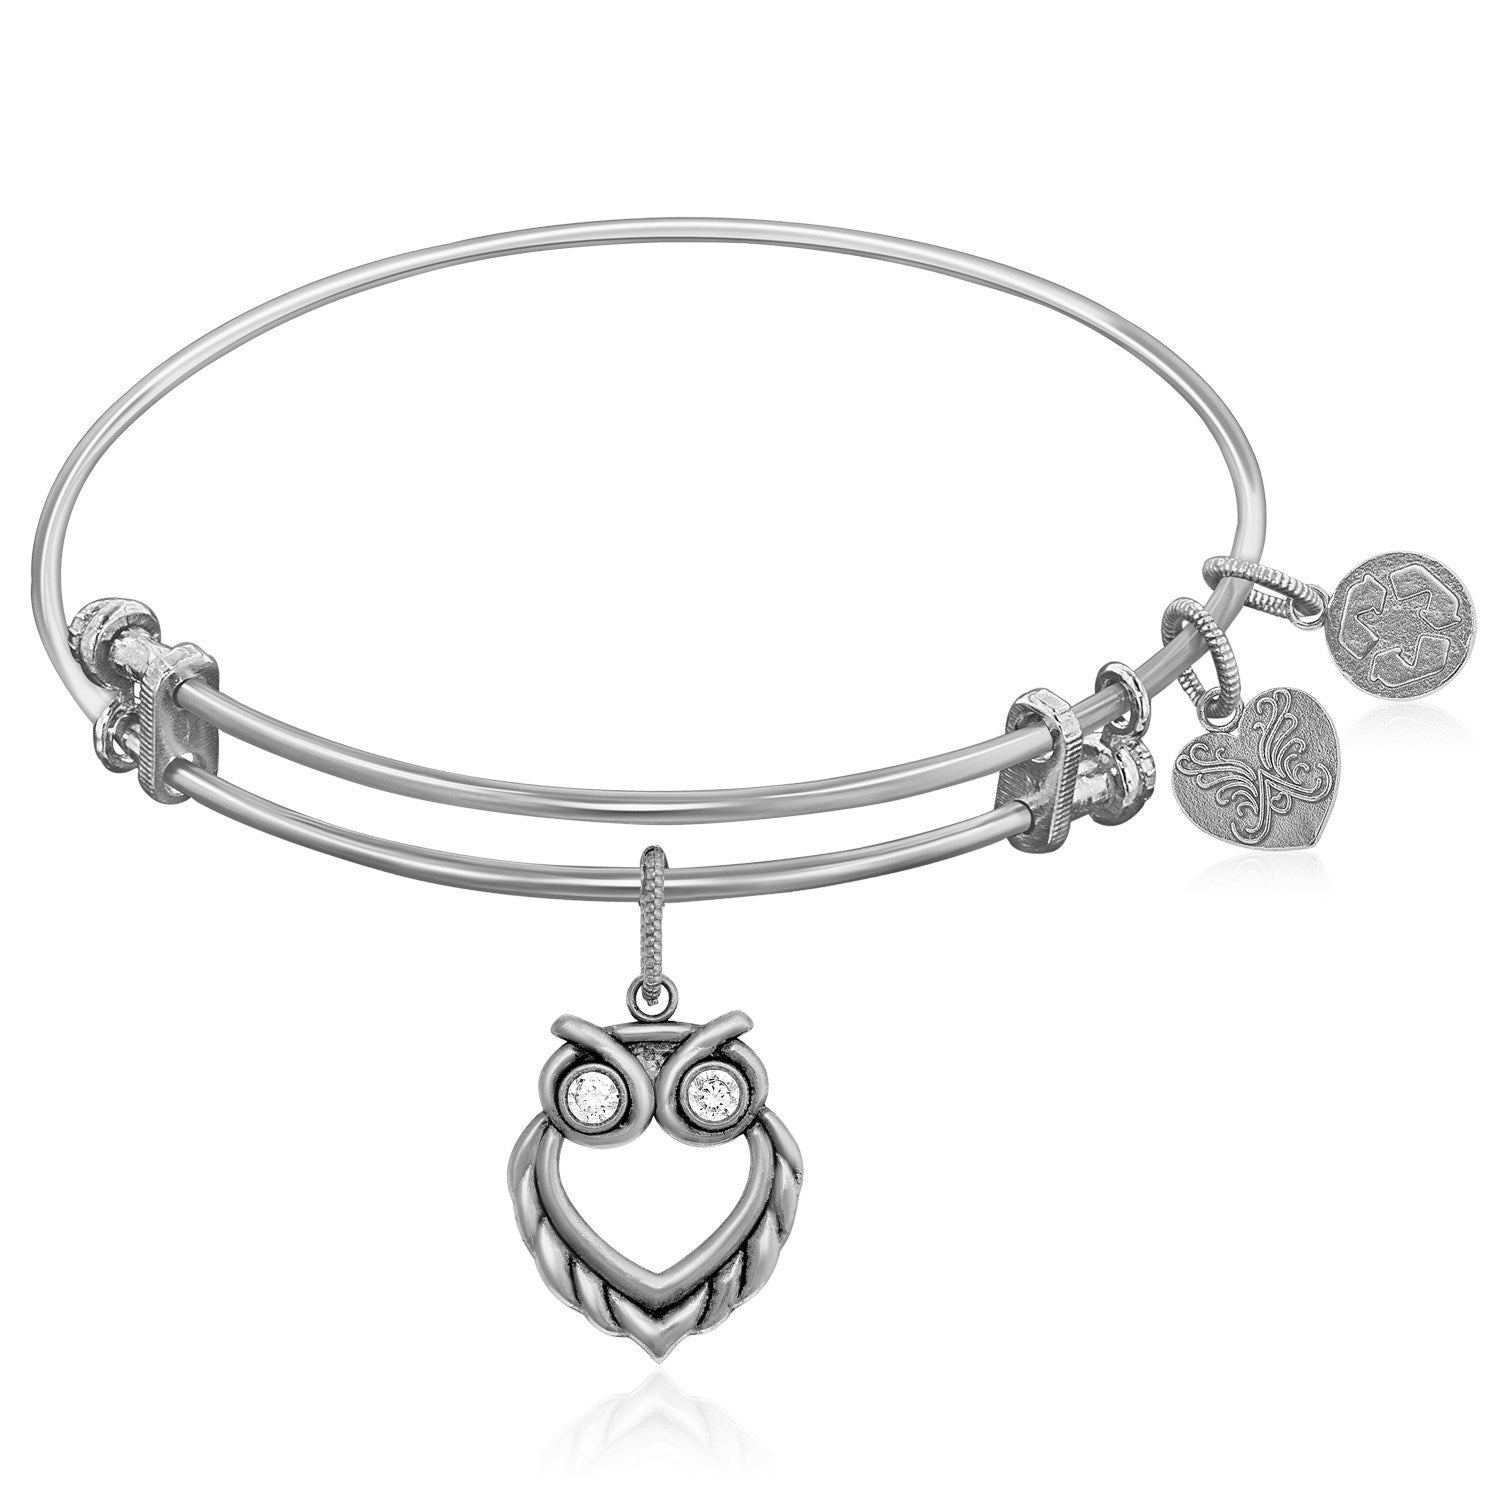 Expandable White Tone Brass Bangle with Owl Angelica Symbol